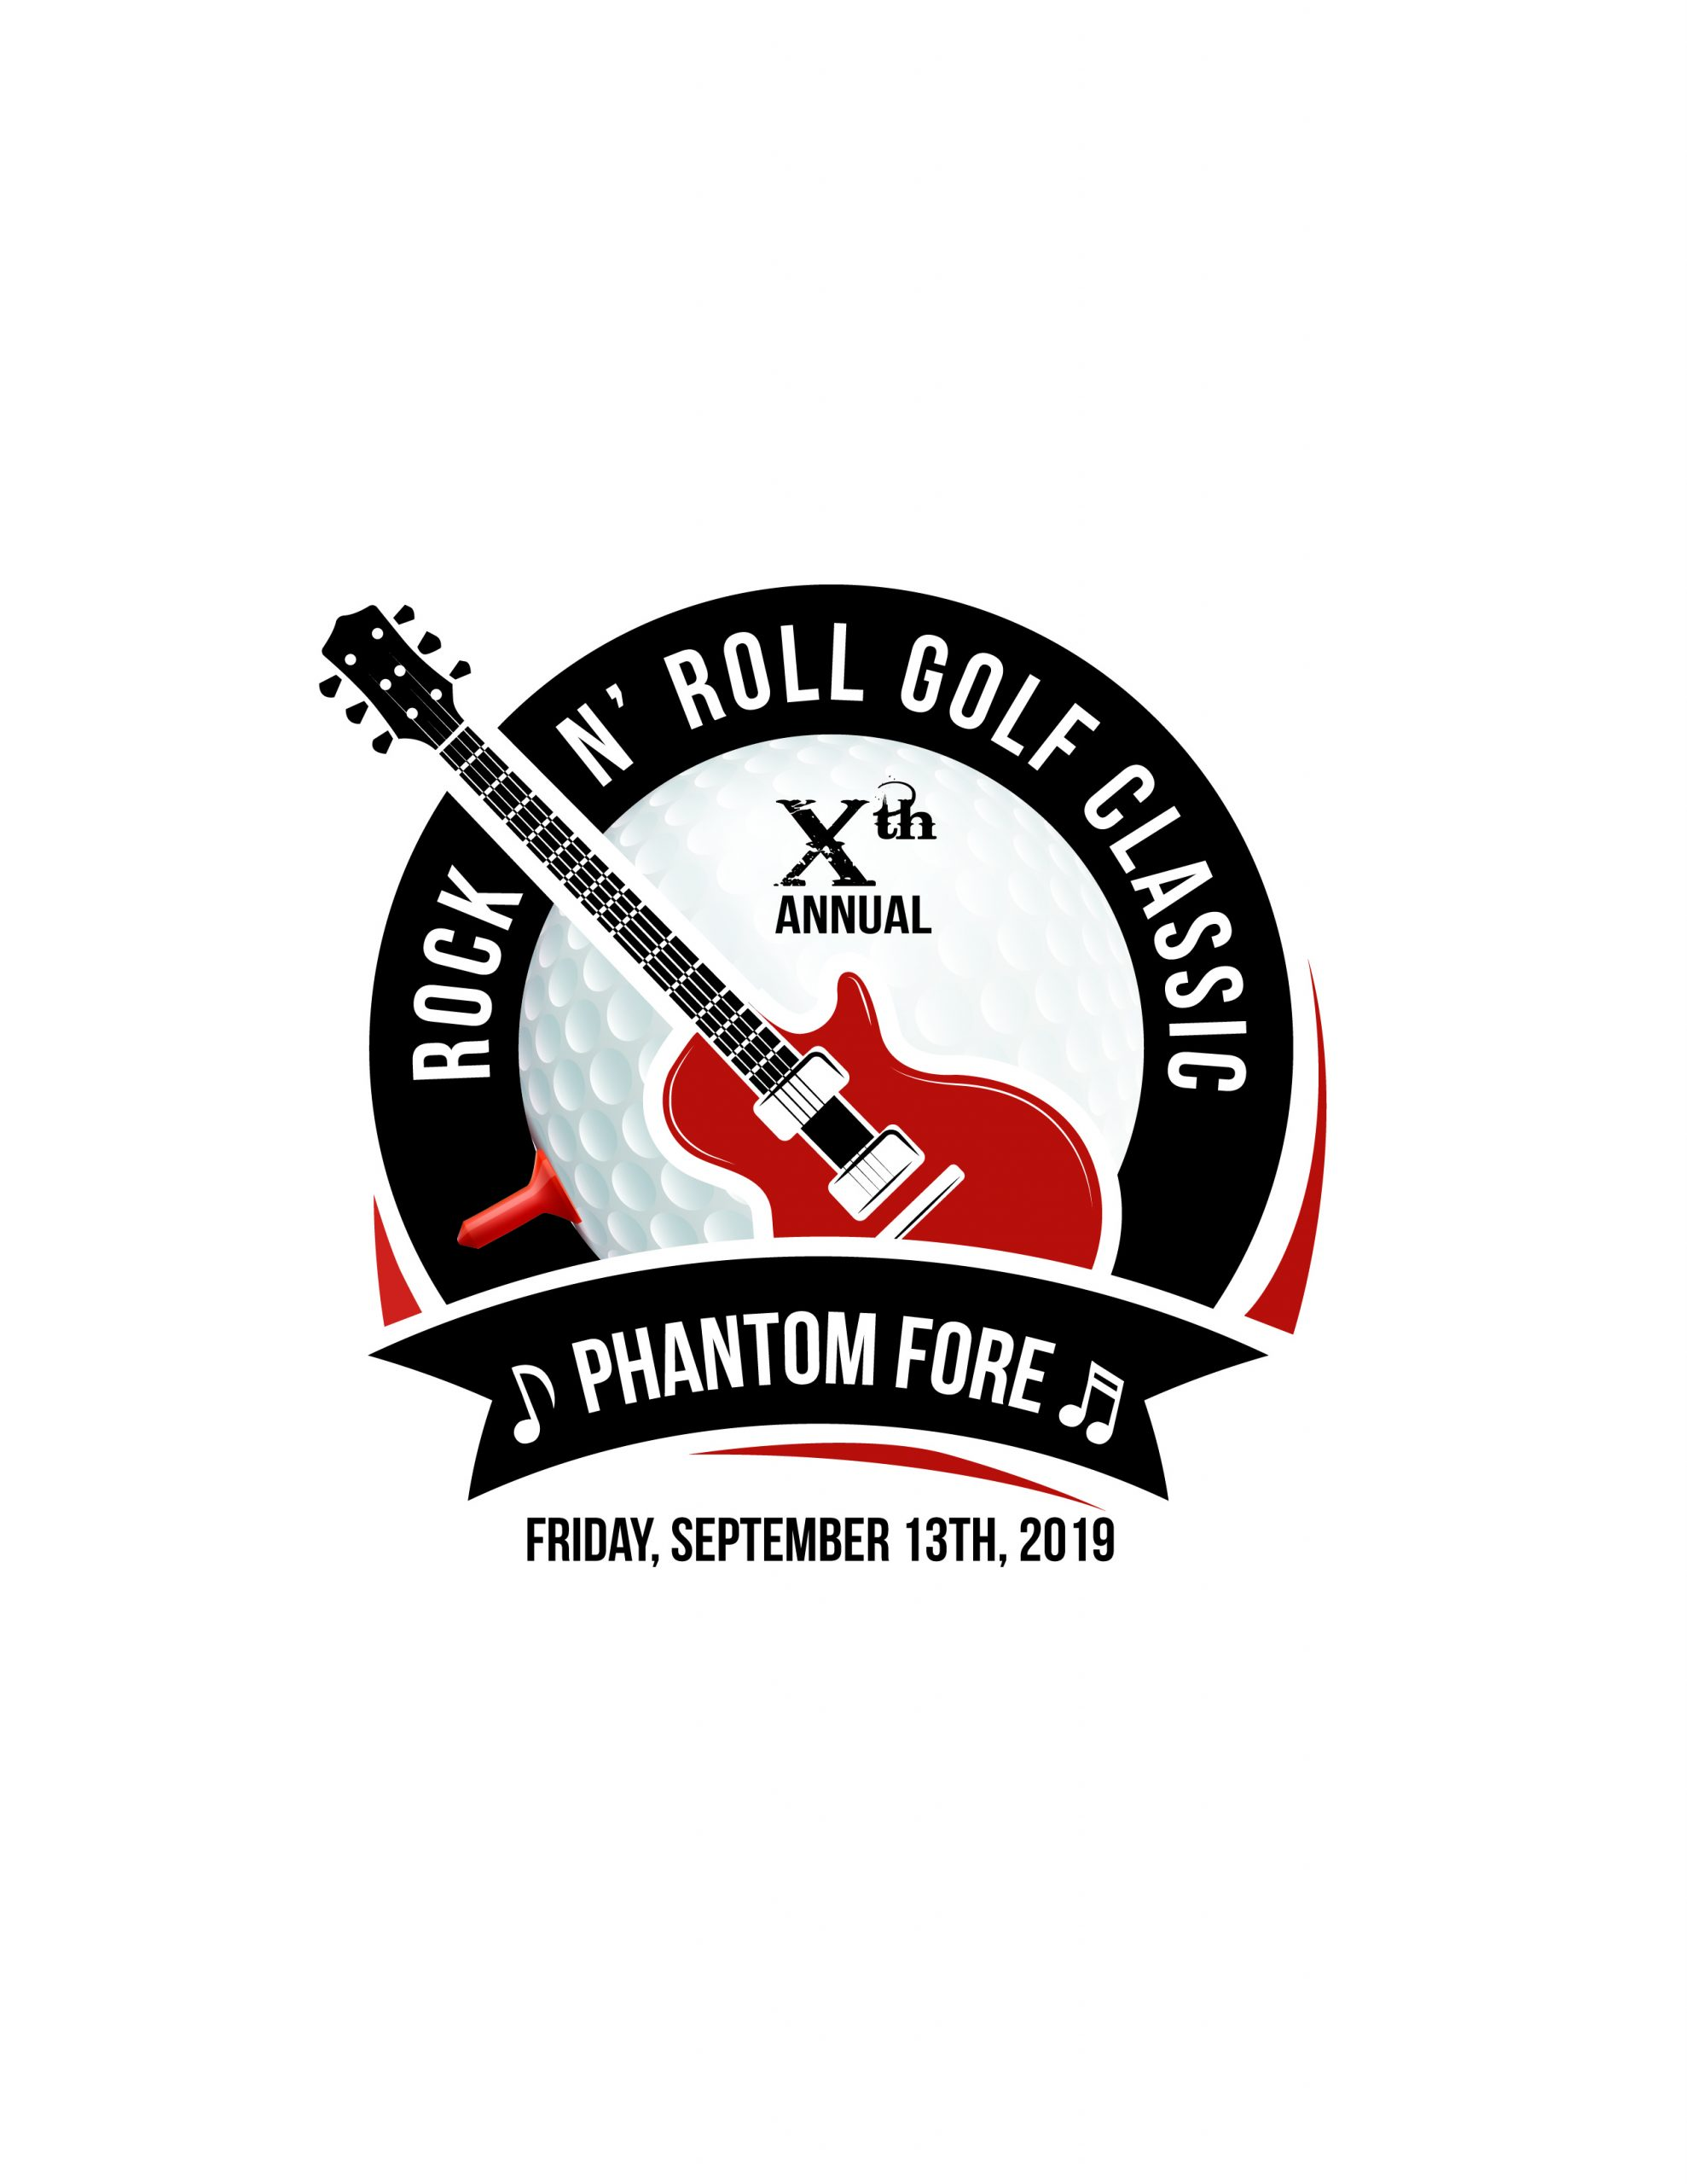 Phantom Fore Rock n' Roll Golf Classic